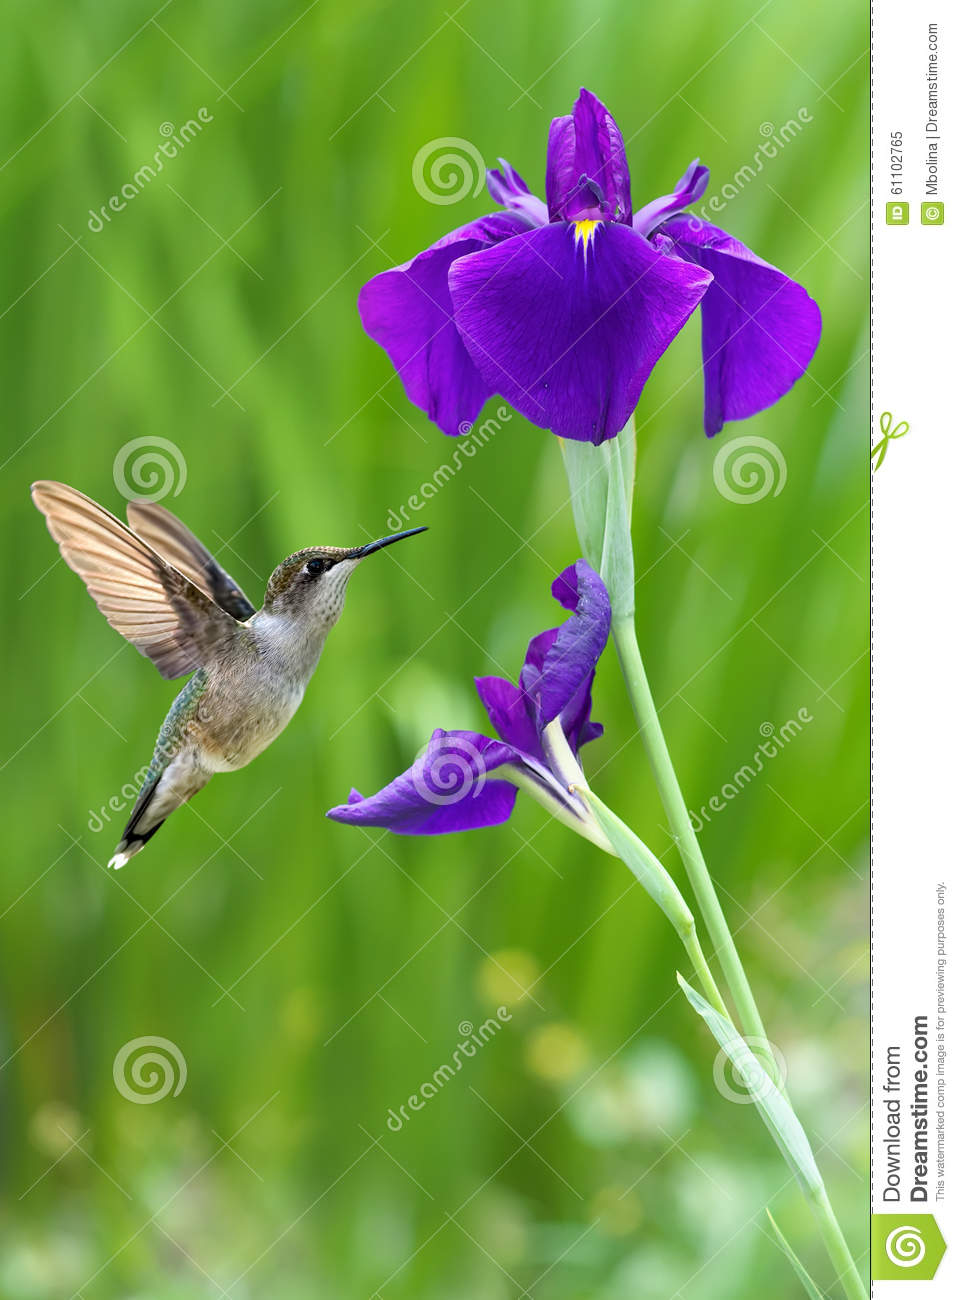 Hummingbird With Iris Flower Over Green Background Stock